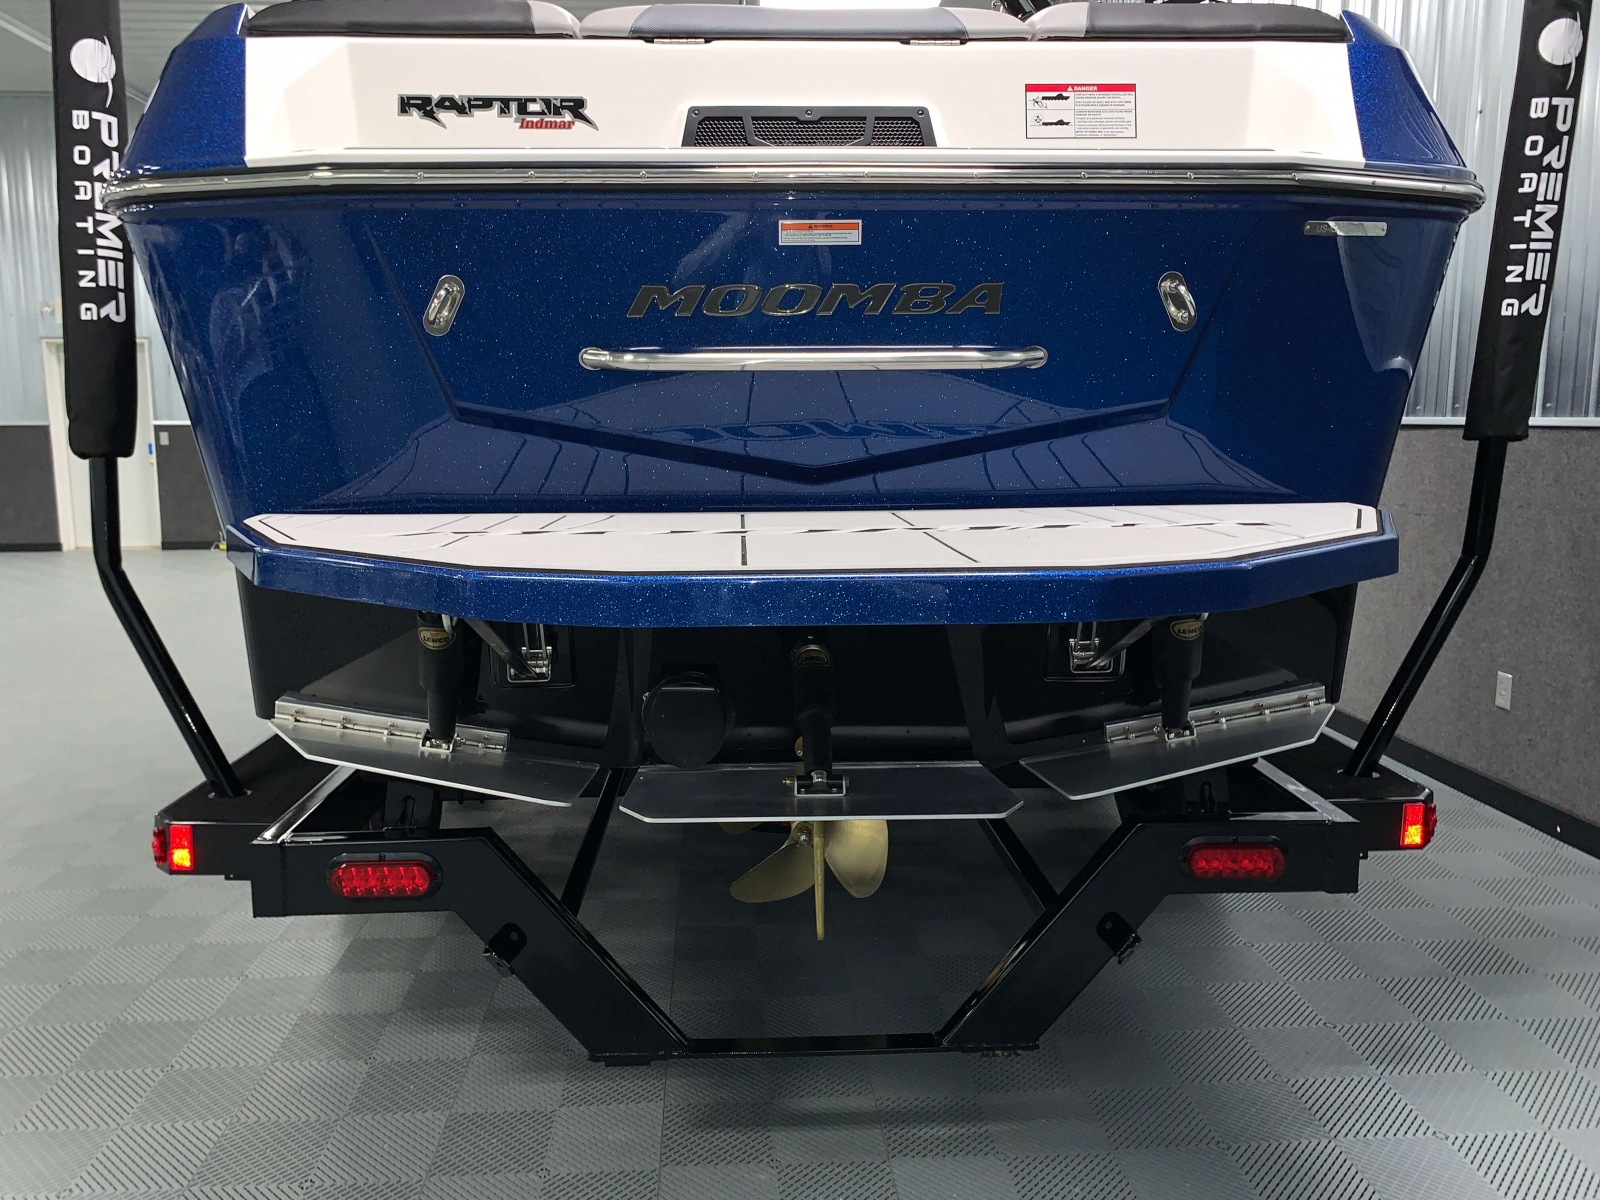 Flow 2.0 Surf System of the 2021 Moomba Max Wake Boat